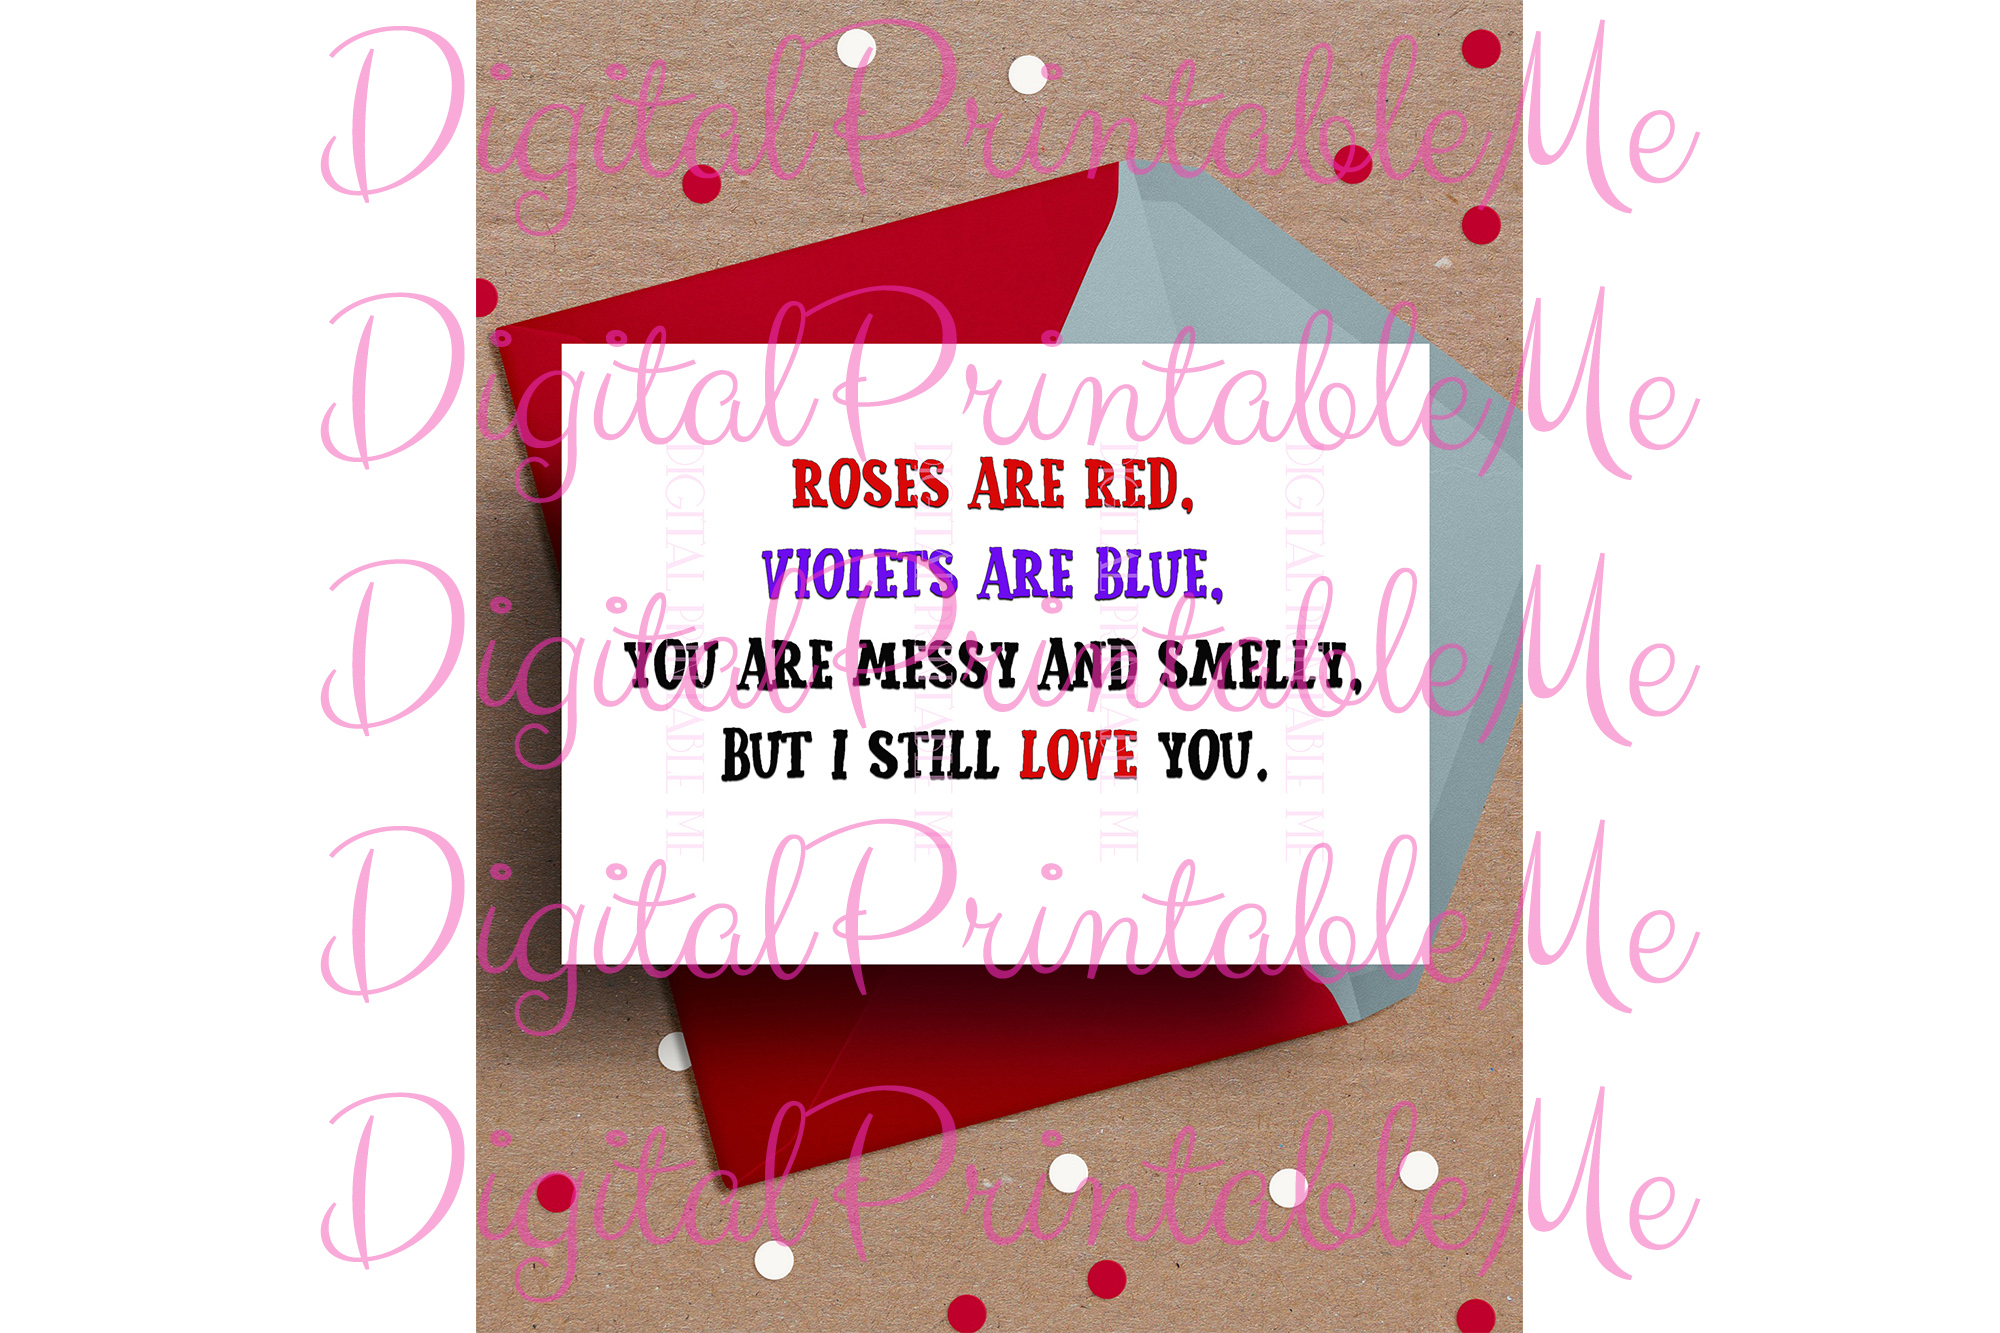 photograph regarding Printable Valentine Cards for Husband identified as Humorous Valentines working day Card, Anniversary Card, Printable appreciate, impolite valentine for Him, roses, birthday card partner boyfriend, anniversary